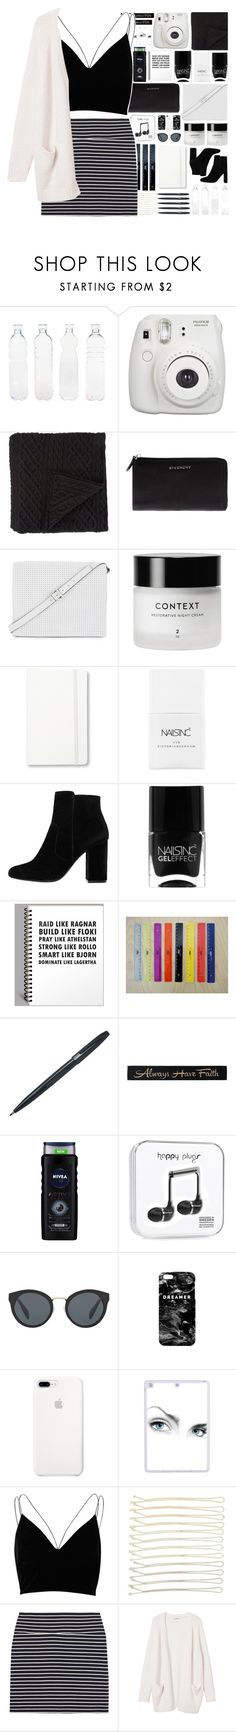 """Black and white"" by stelbell ❤ liked on Polyvore featuring Seletti, Fujifilm, Morgan Collection, Givenchy, BCBGMAXAZRIA, Moleskine, Nails Inc., MANGO, Pentel and DutchCrafters"